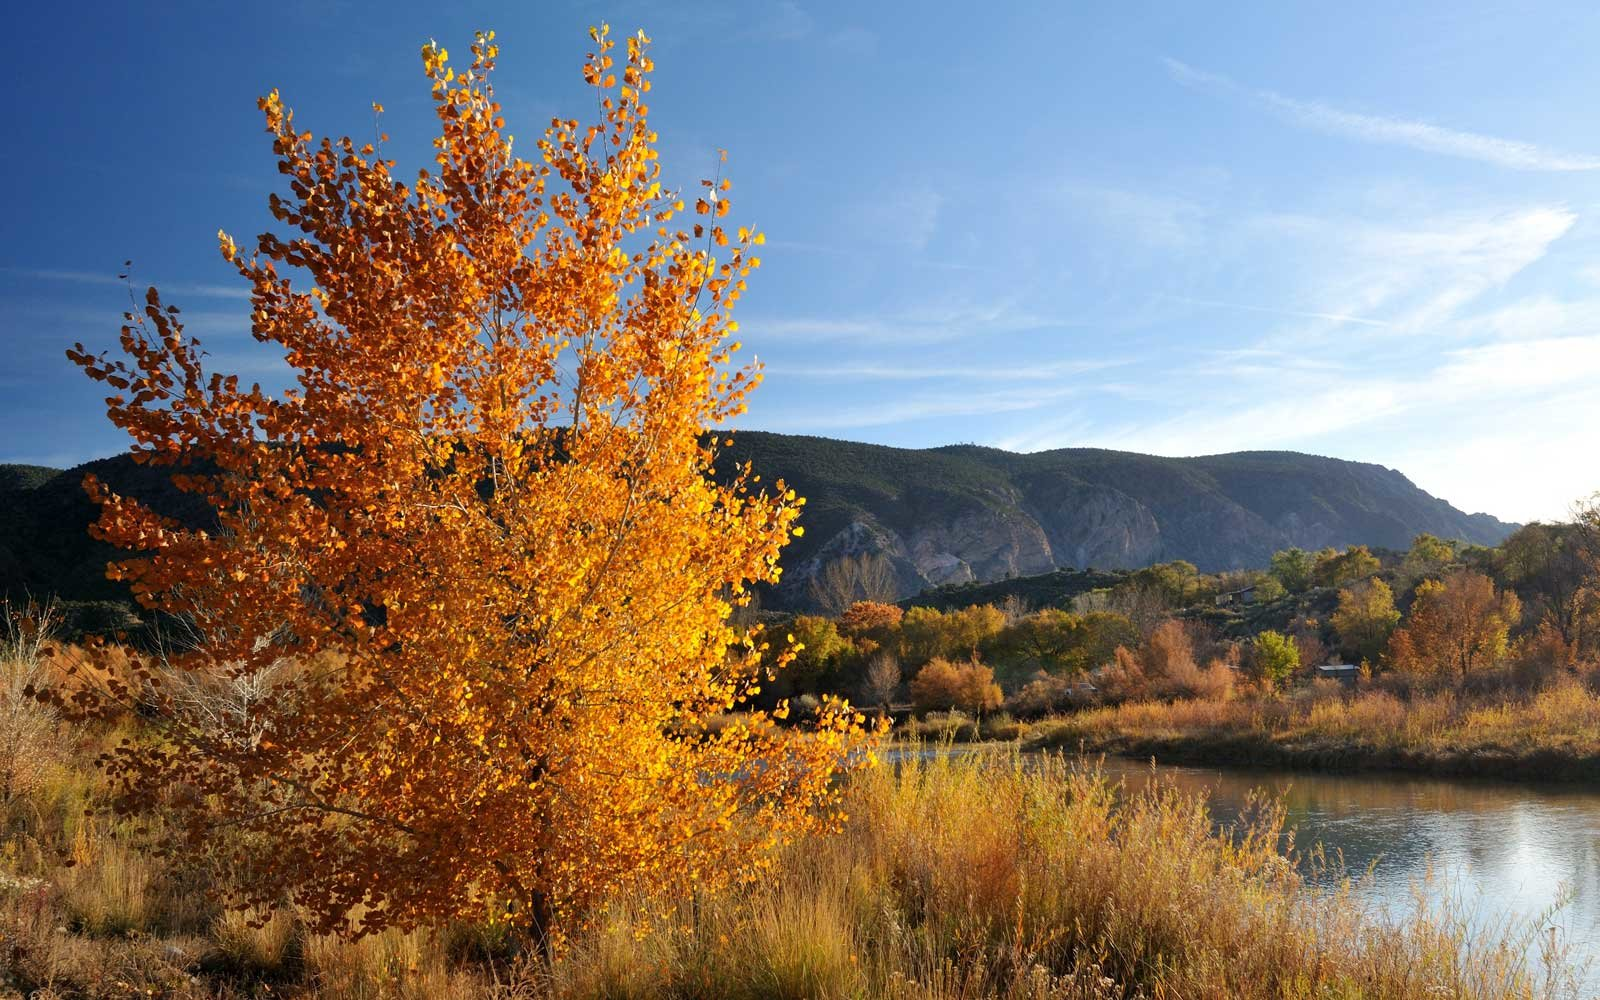 Autumn Colors in Taos, New Mexico